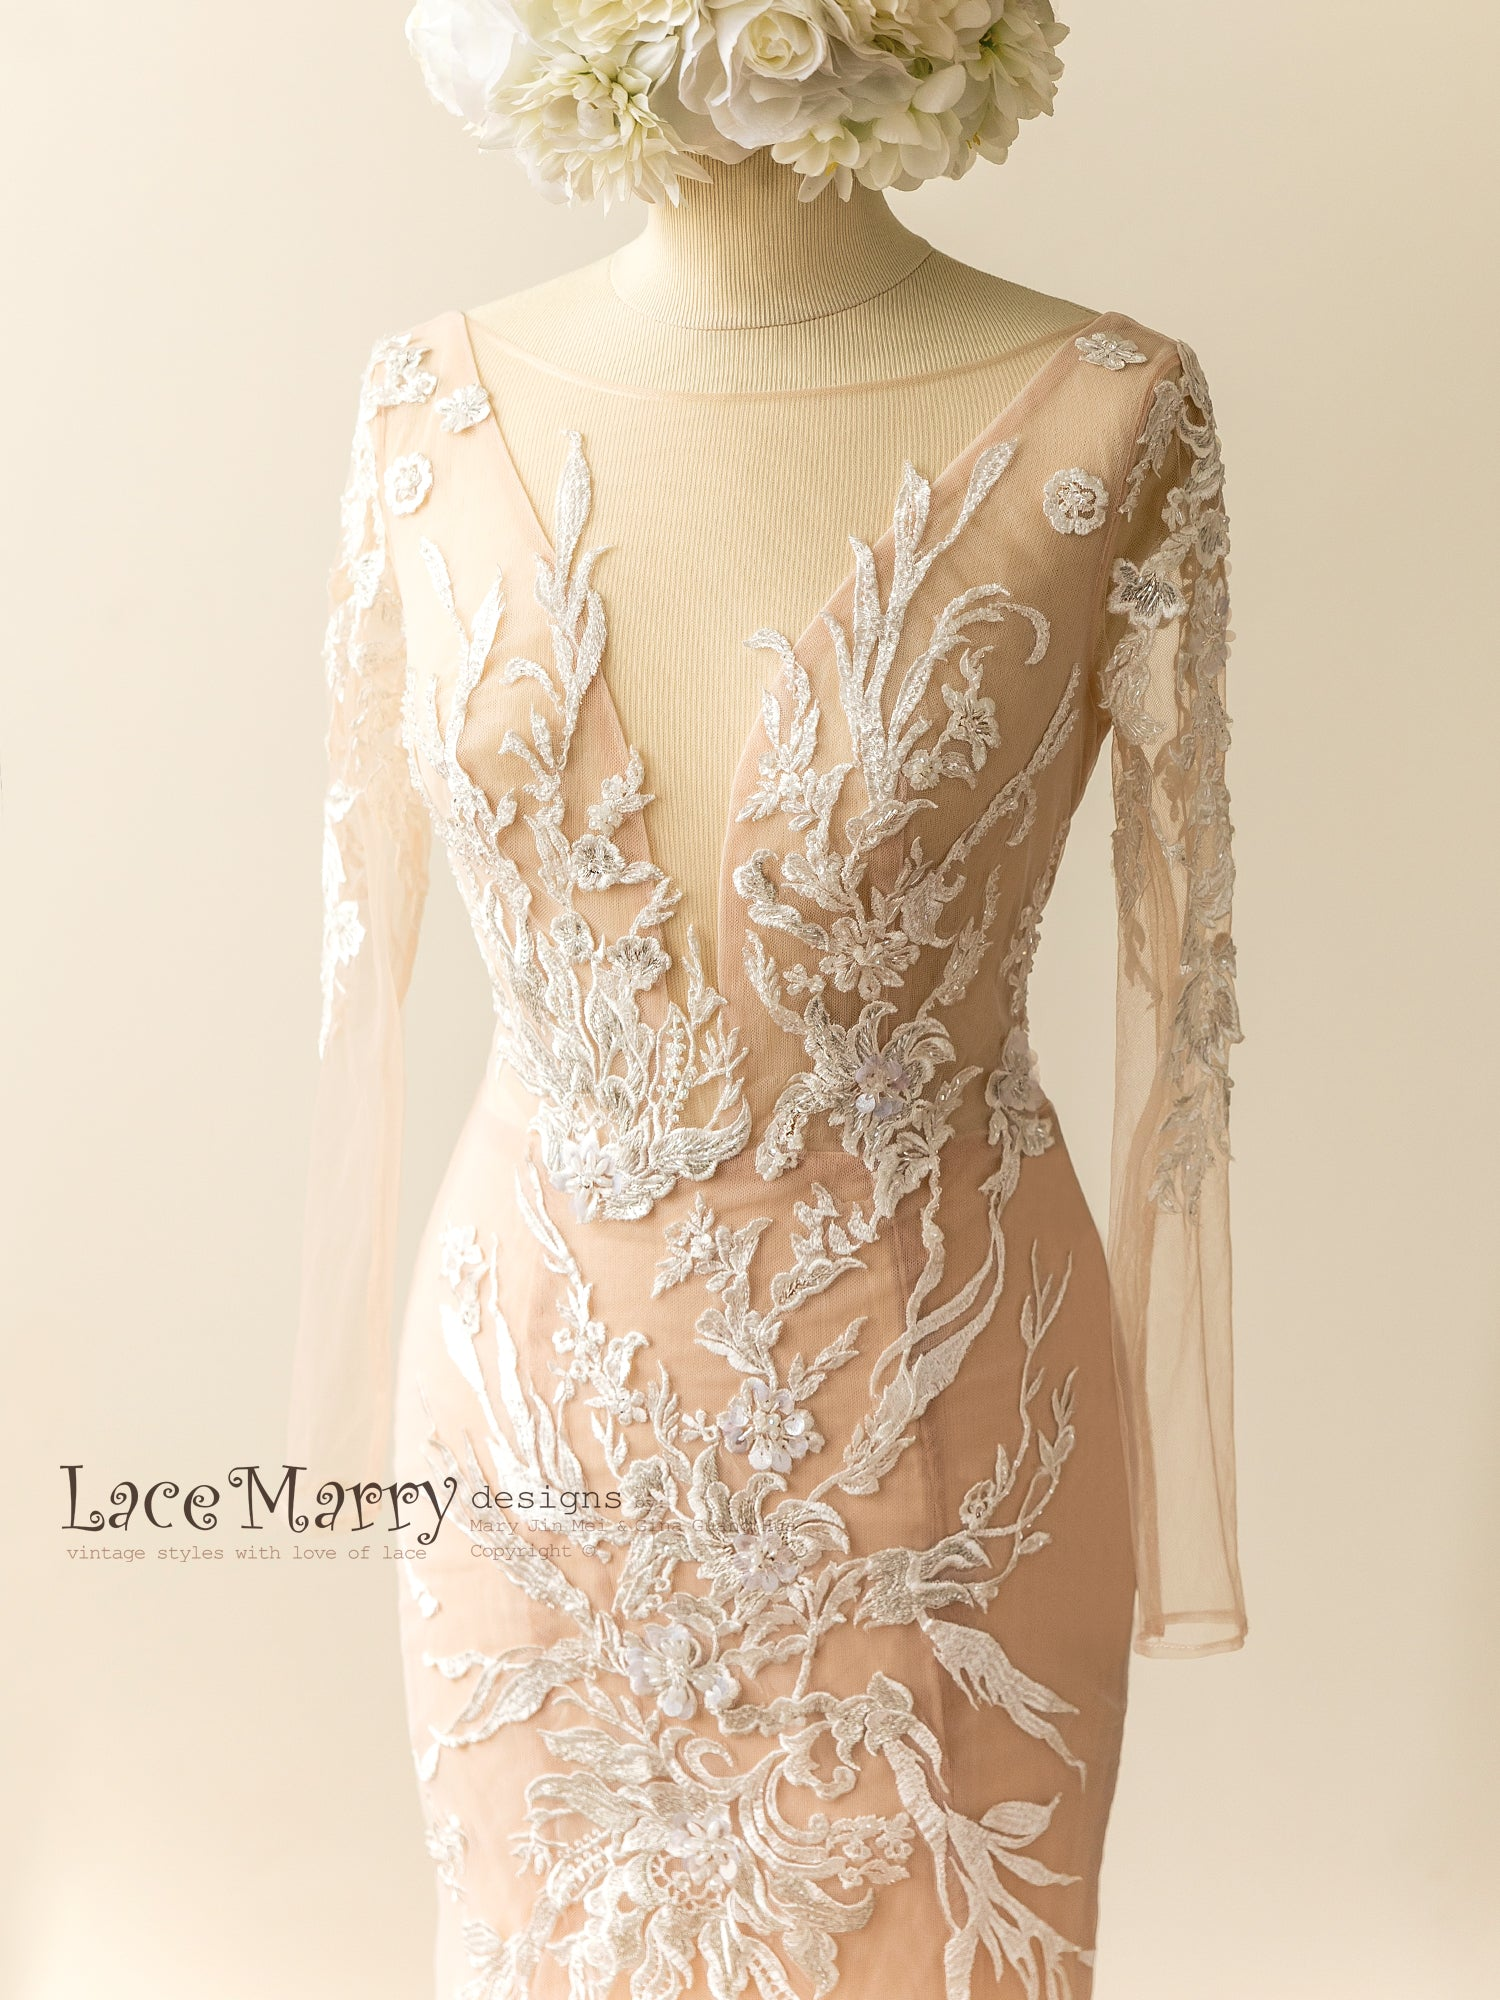 Deep V Neckline Nude Wedding Dress with Log Sleeves and Beading